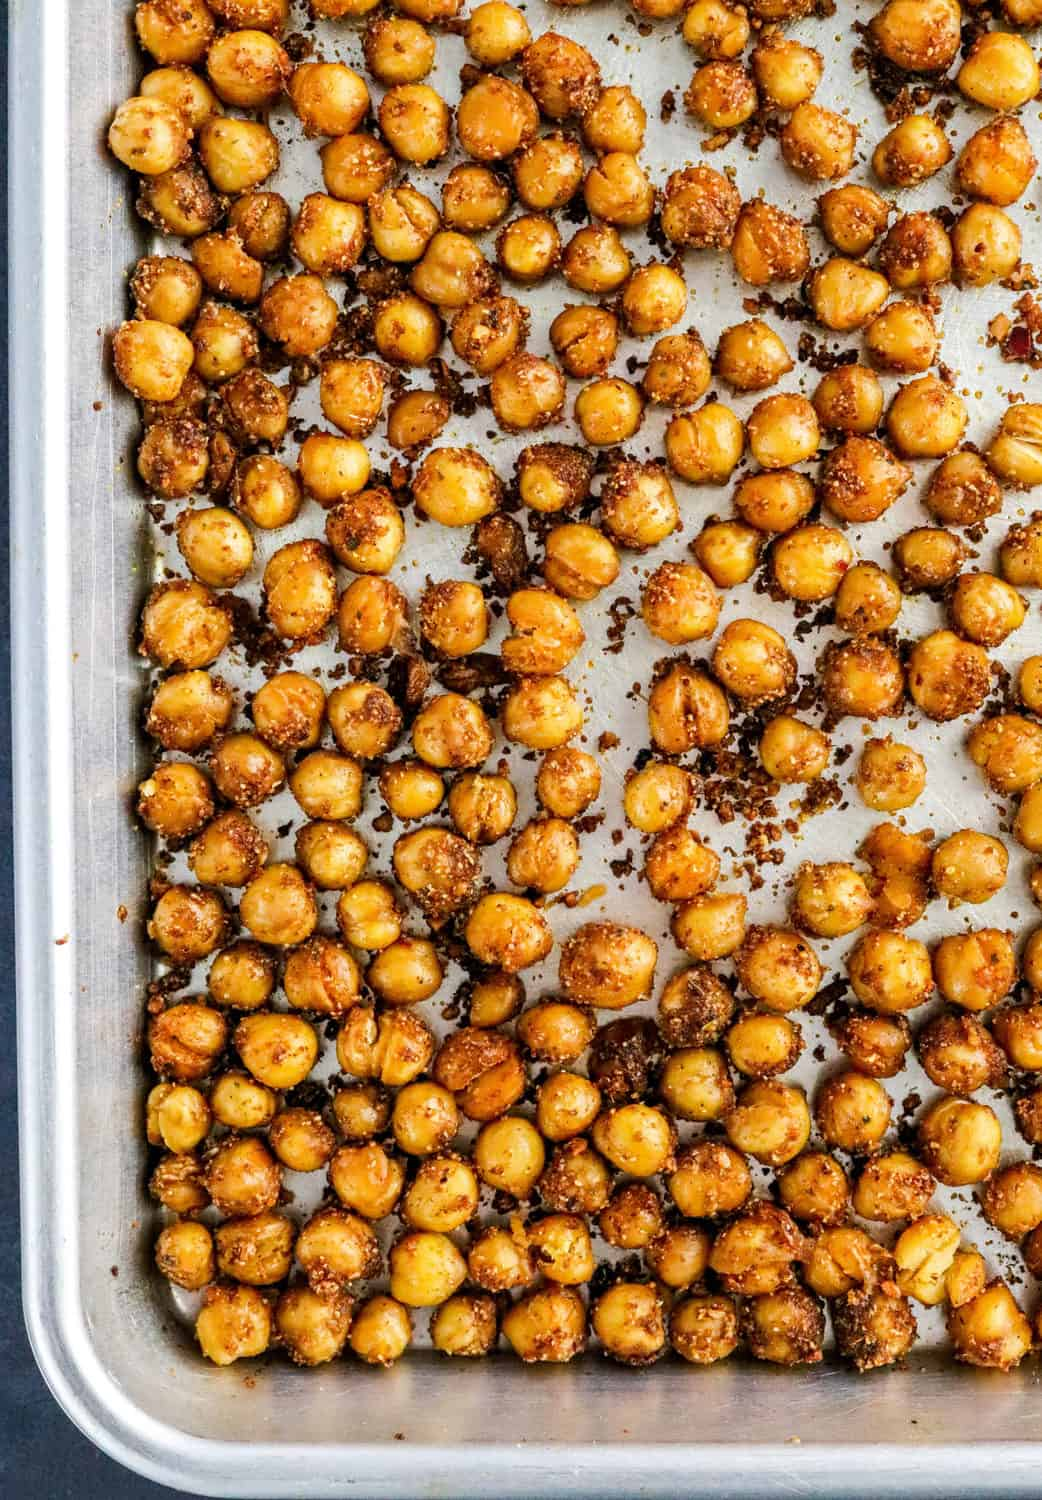 Close up of super crispy brown chickpeas spread out on a baking sheet